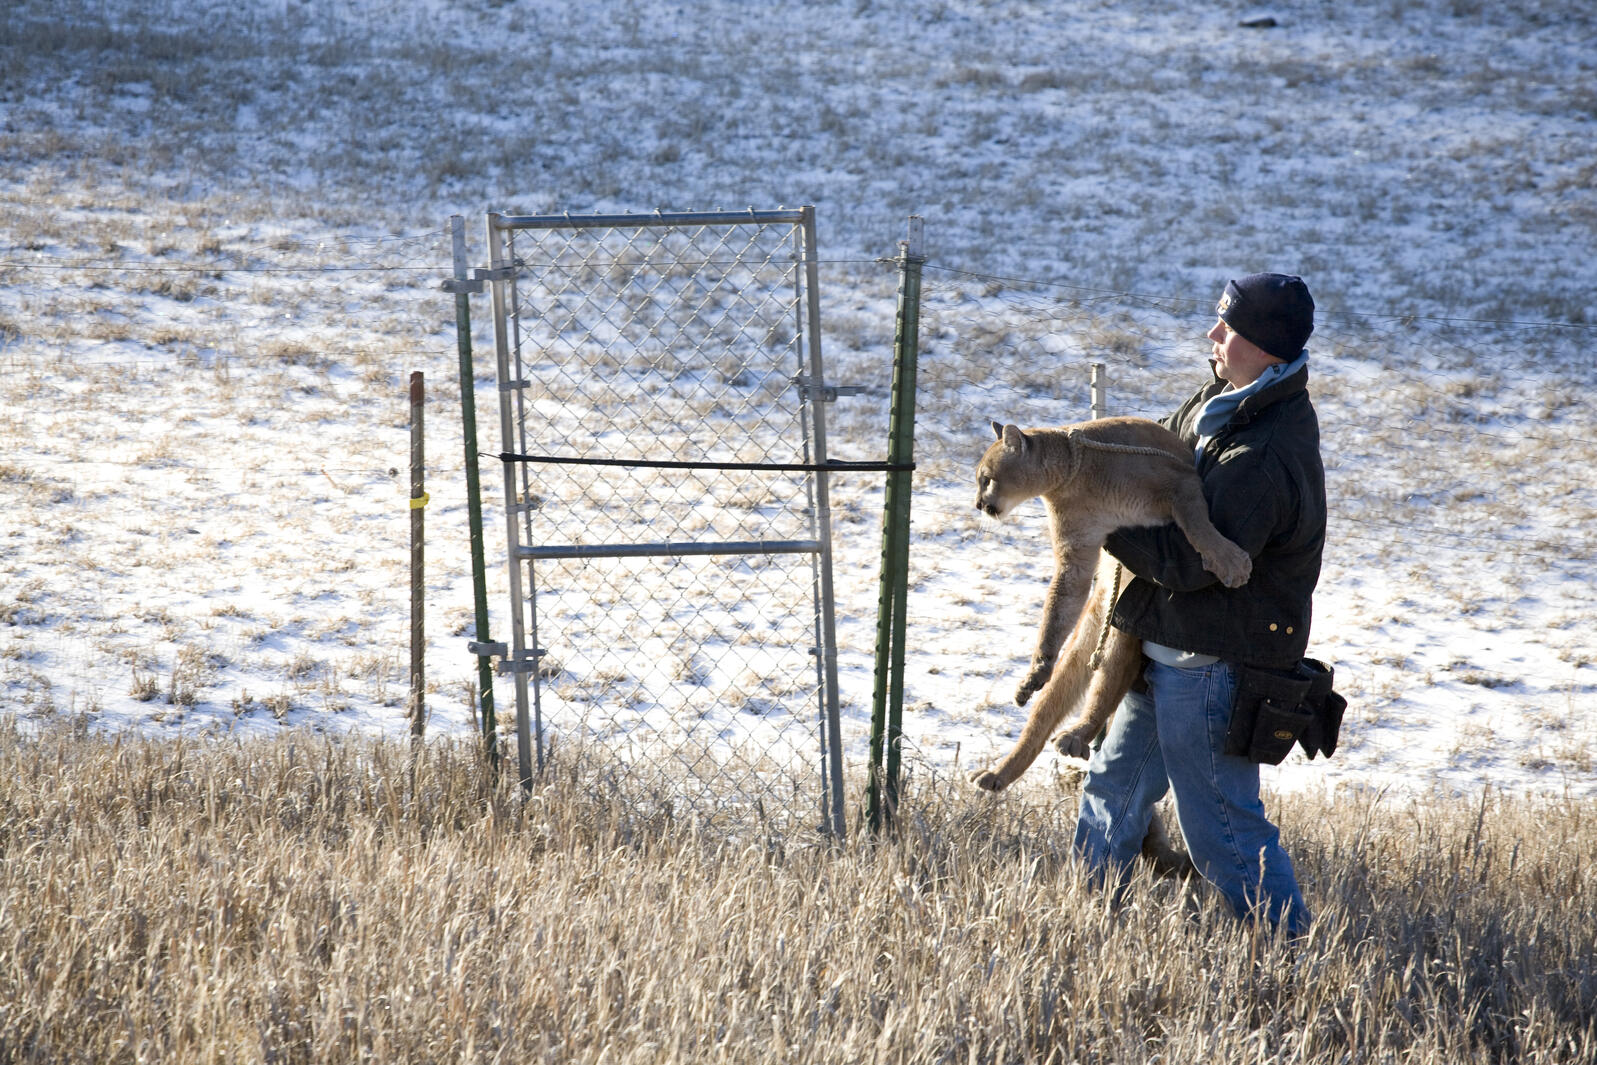 Here, in a game-farm shot you won't see elsewhere, is one of Triple D's cougars. Photograph by Andrew Geiger